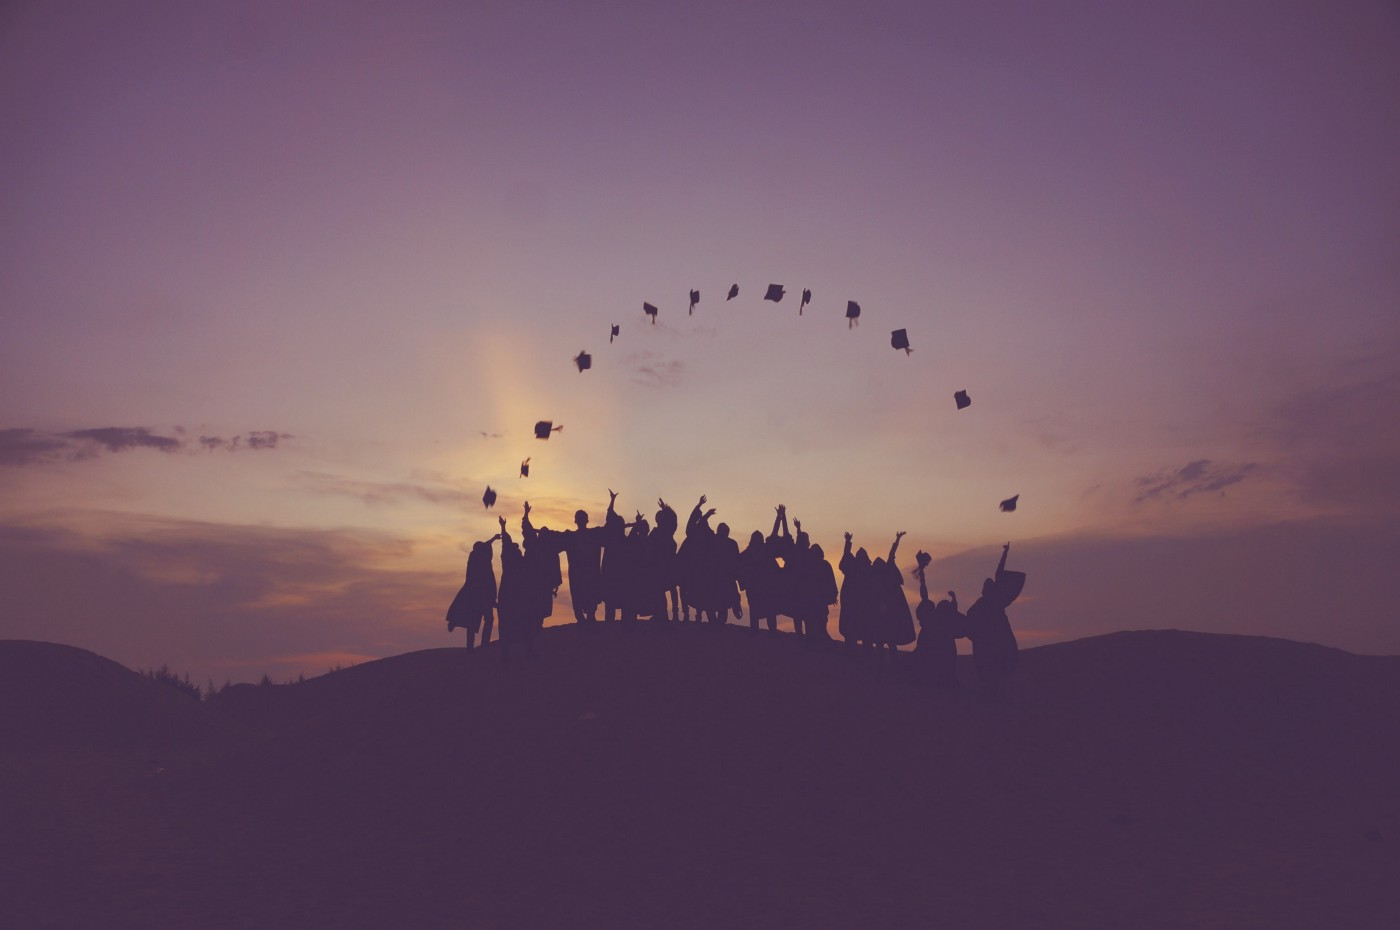 Silhouette of graduates throwing their hats in the air. | Photo by Baim Hanif on Unsplash